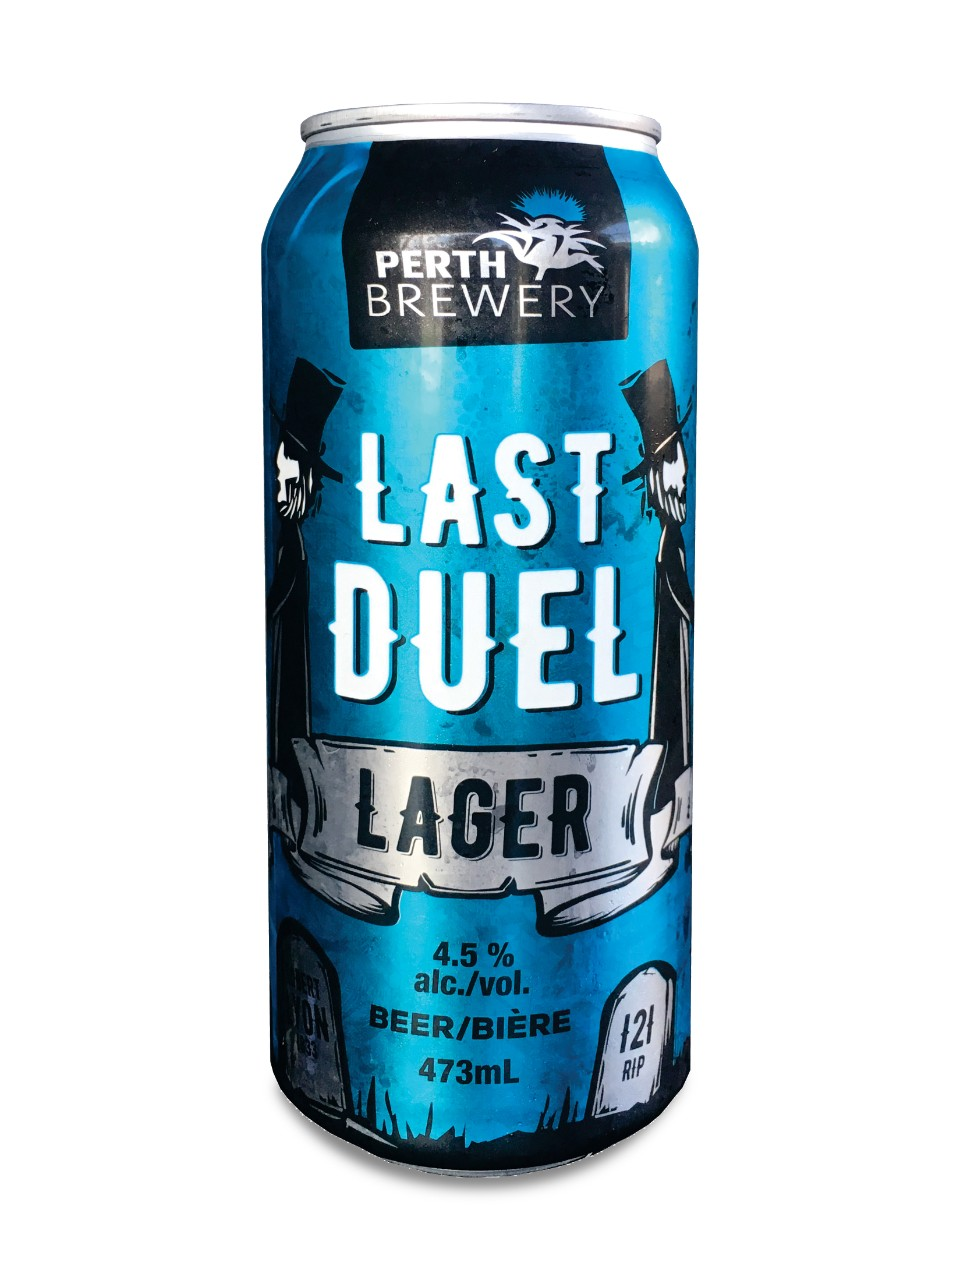 Perth Brewery Last Duel Lager